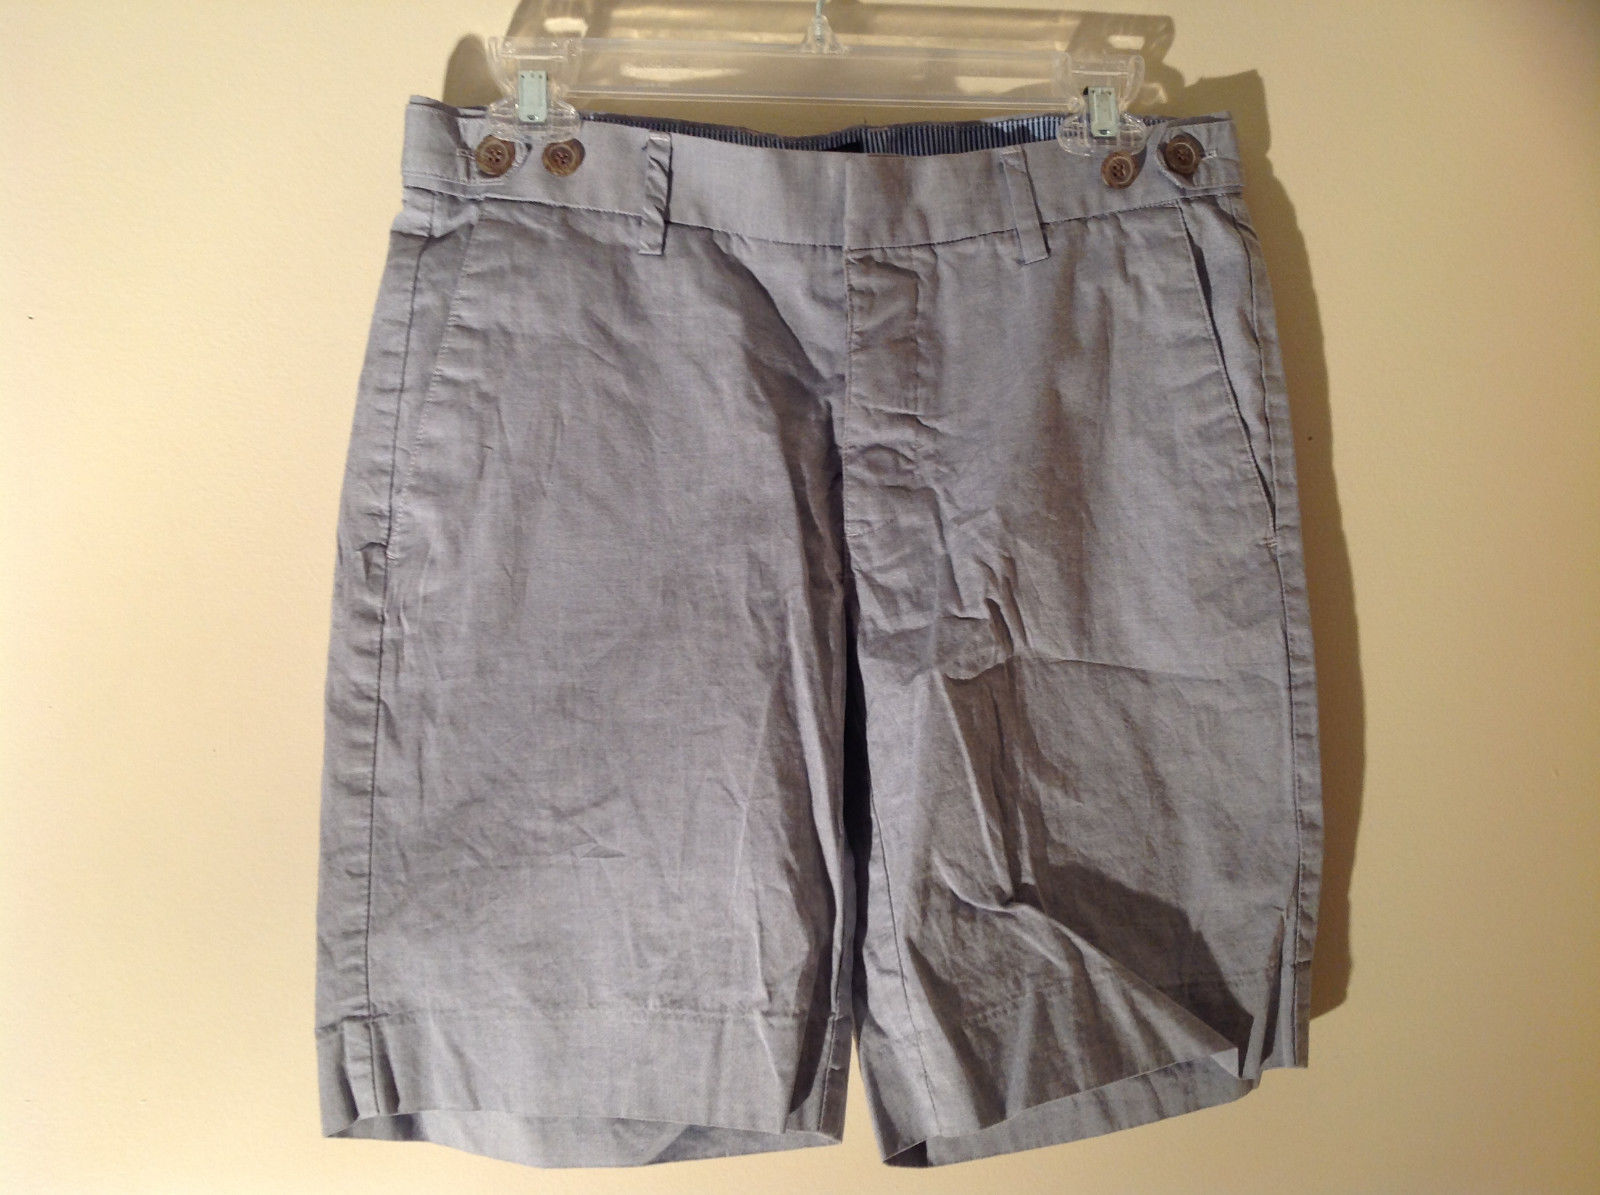 Light Gray Bermuda Shorts from H and M Zip Button Clasp Closure Size 32R